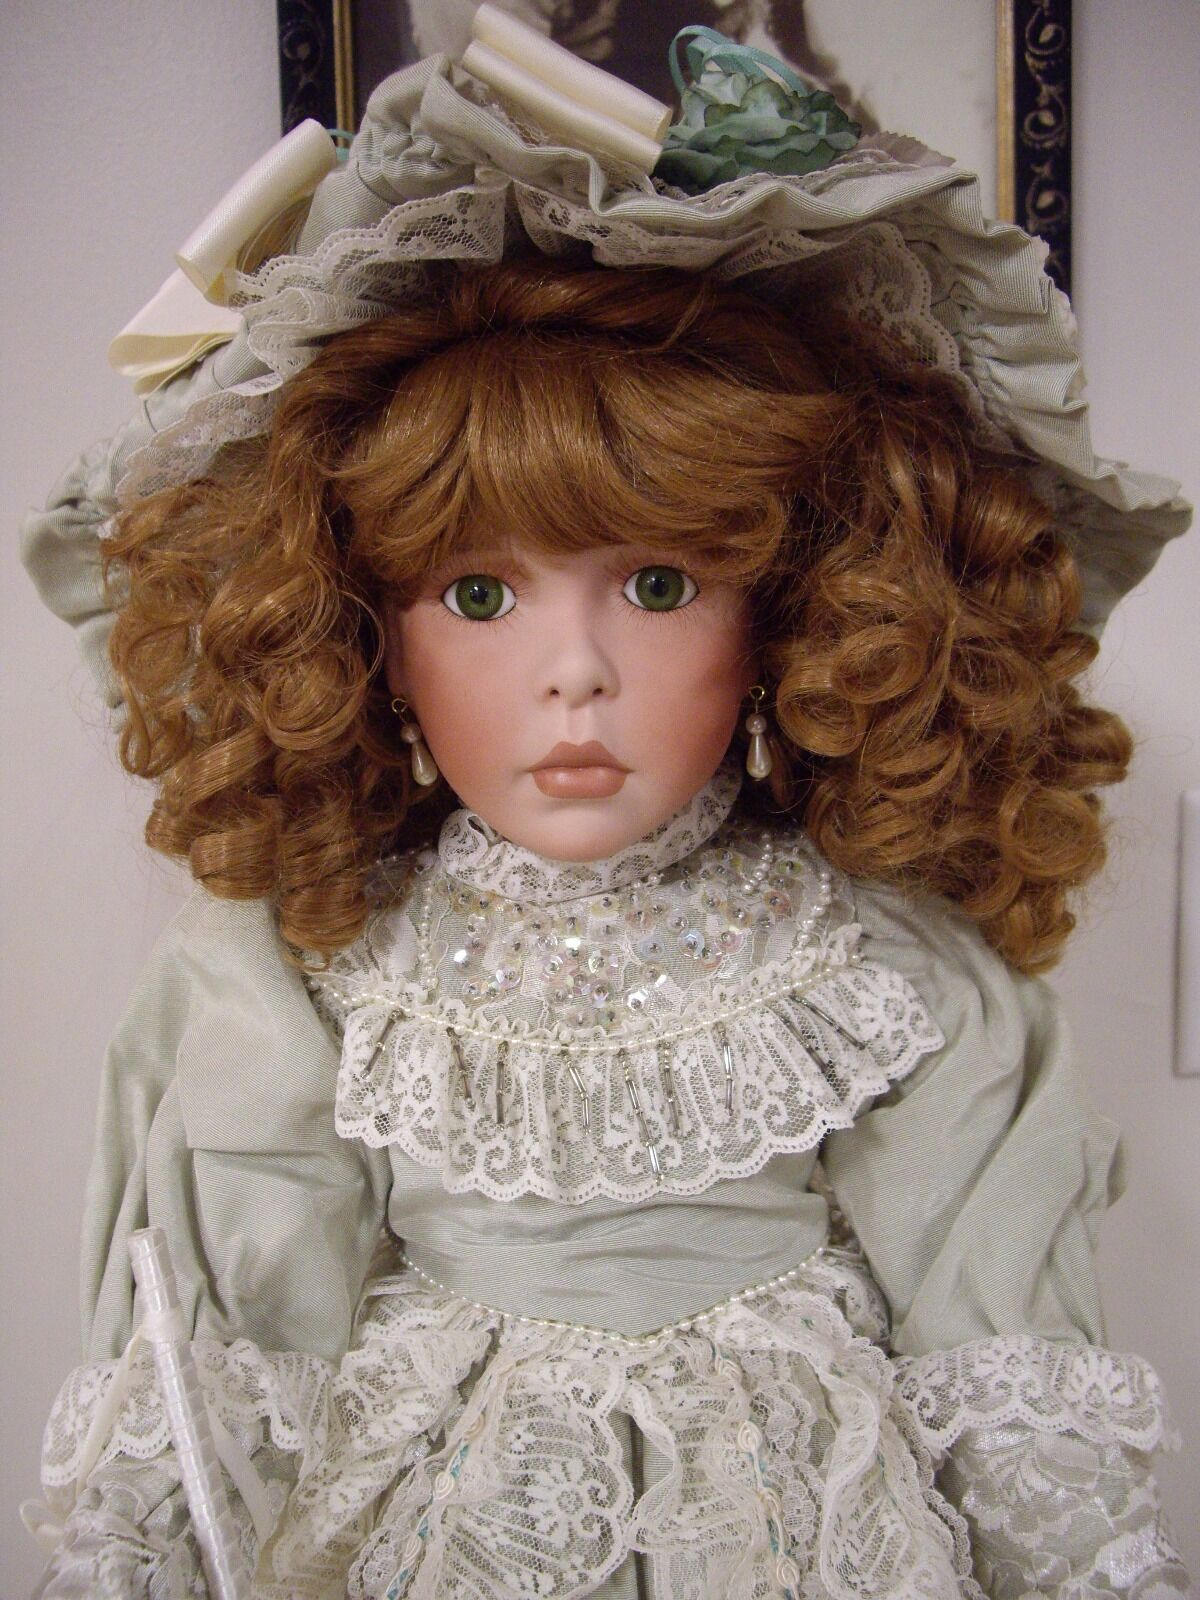 World Gallery Dolls & Collectibles, American Artists By Kais, Inc.